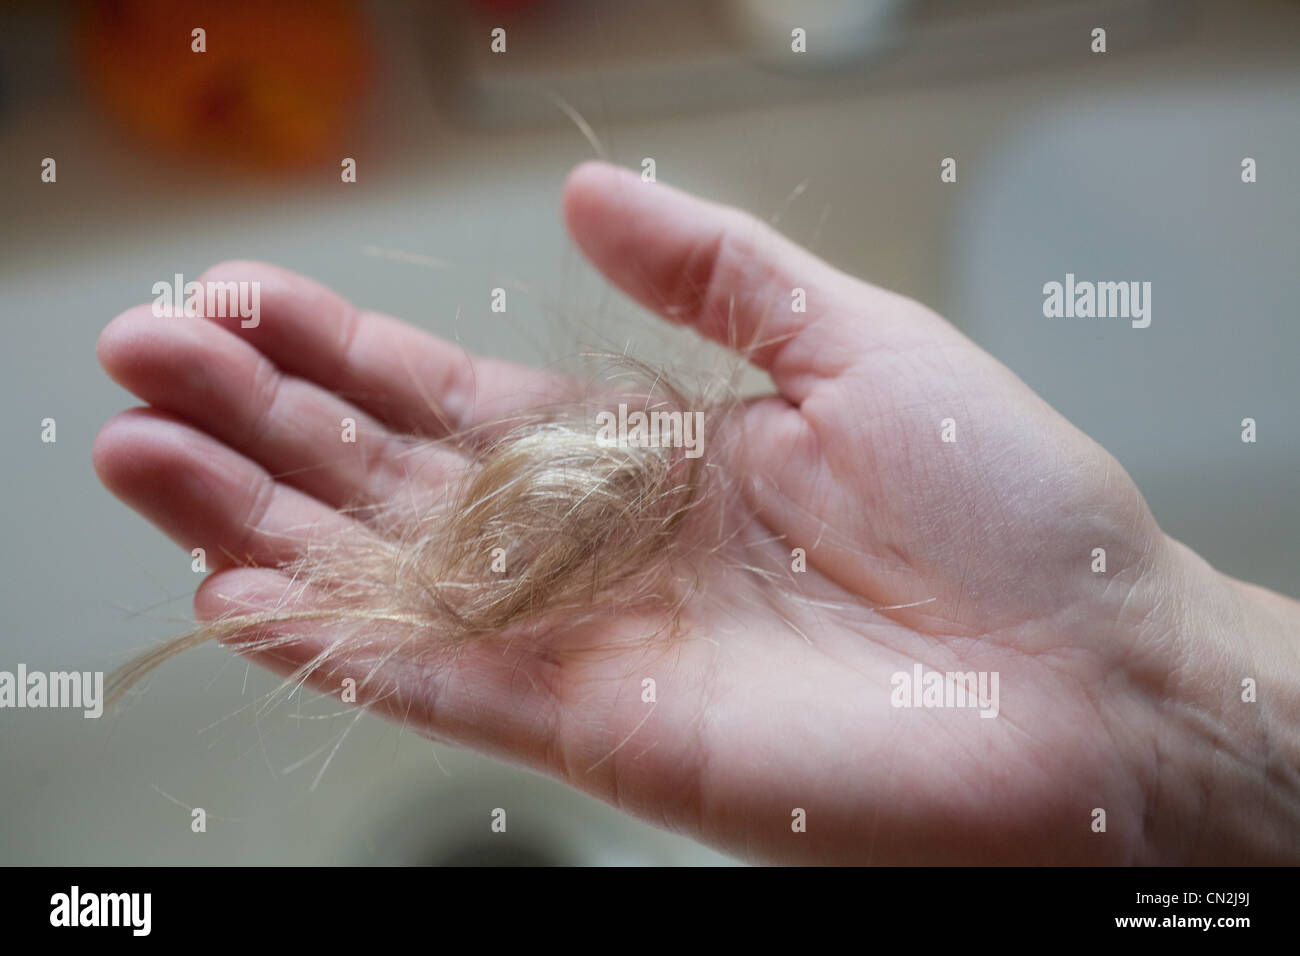 Adult holding pieces of blond hair in palm - Stock Image